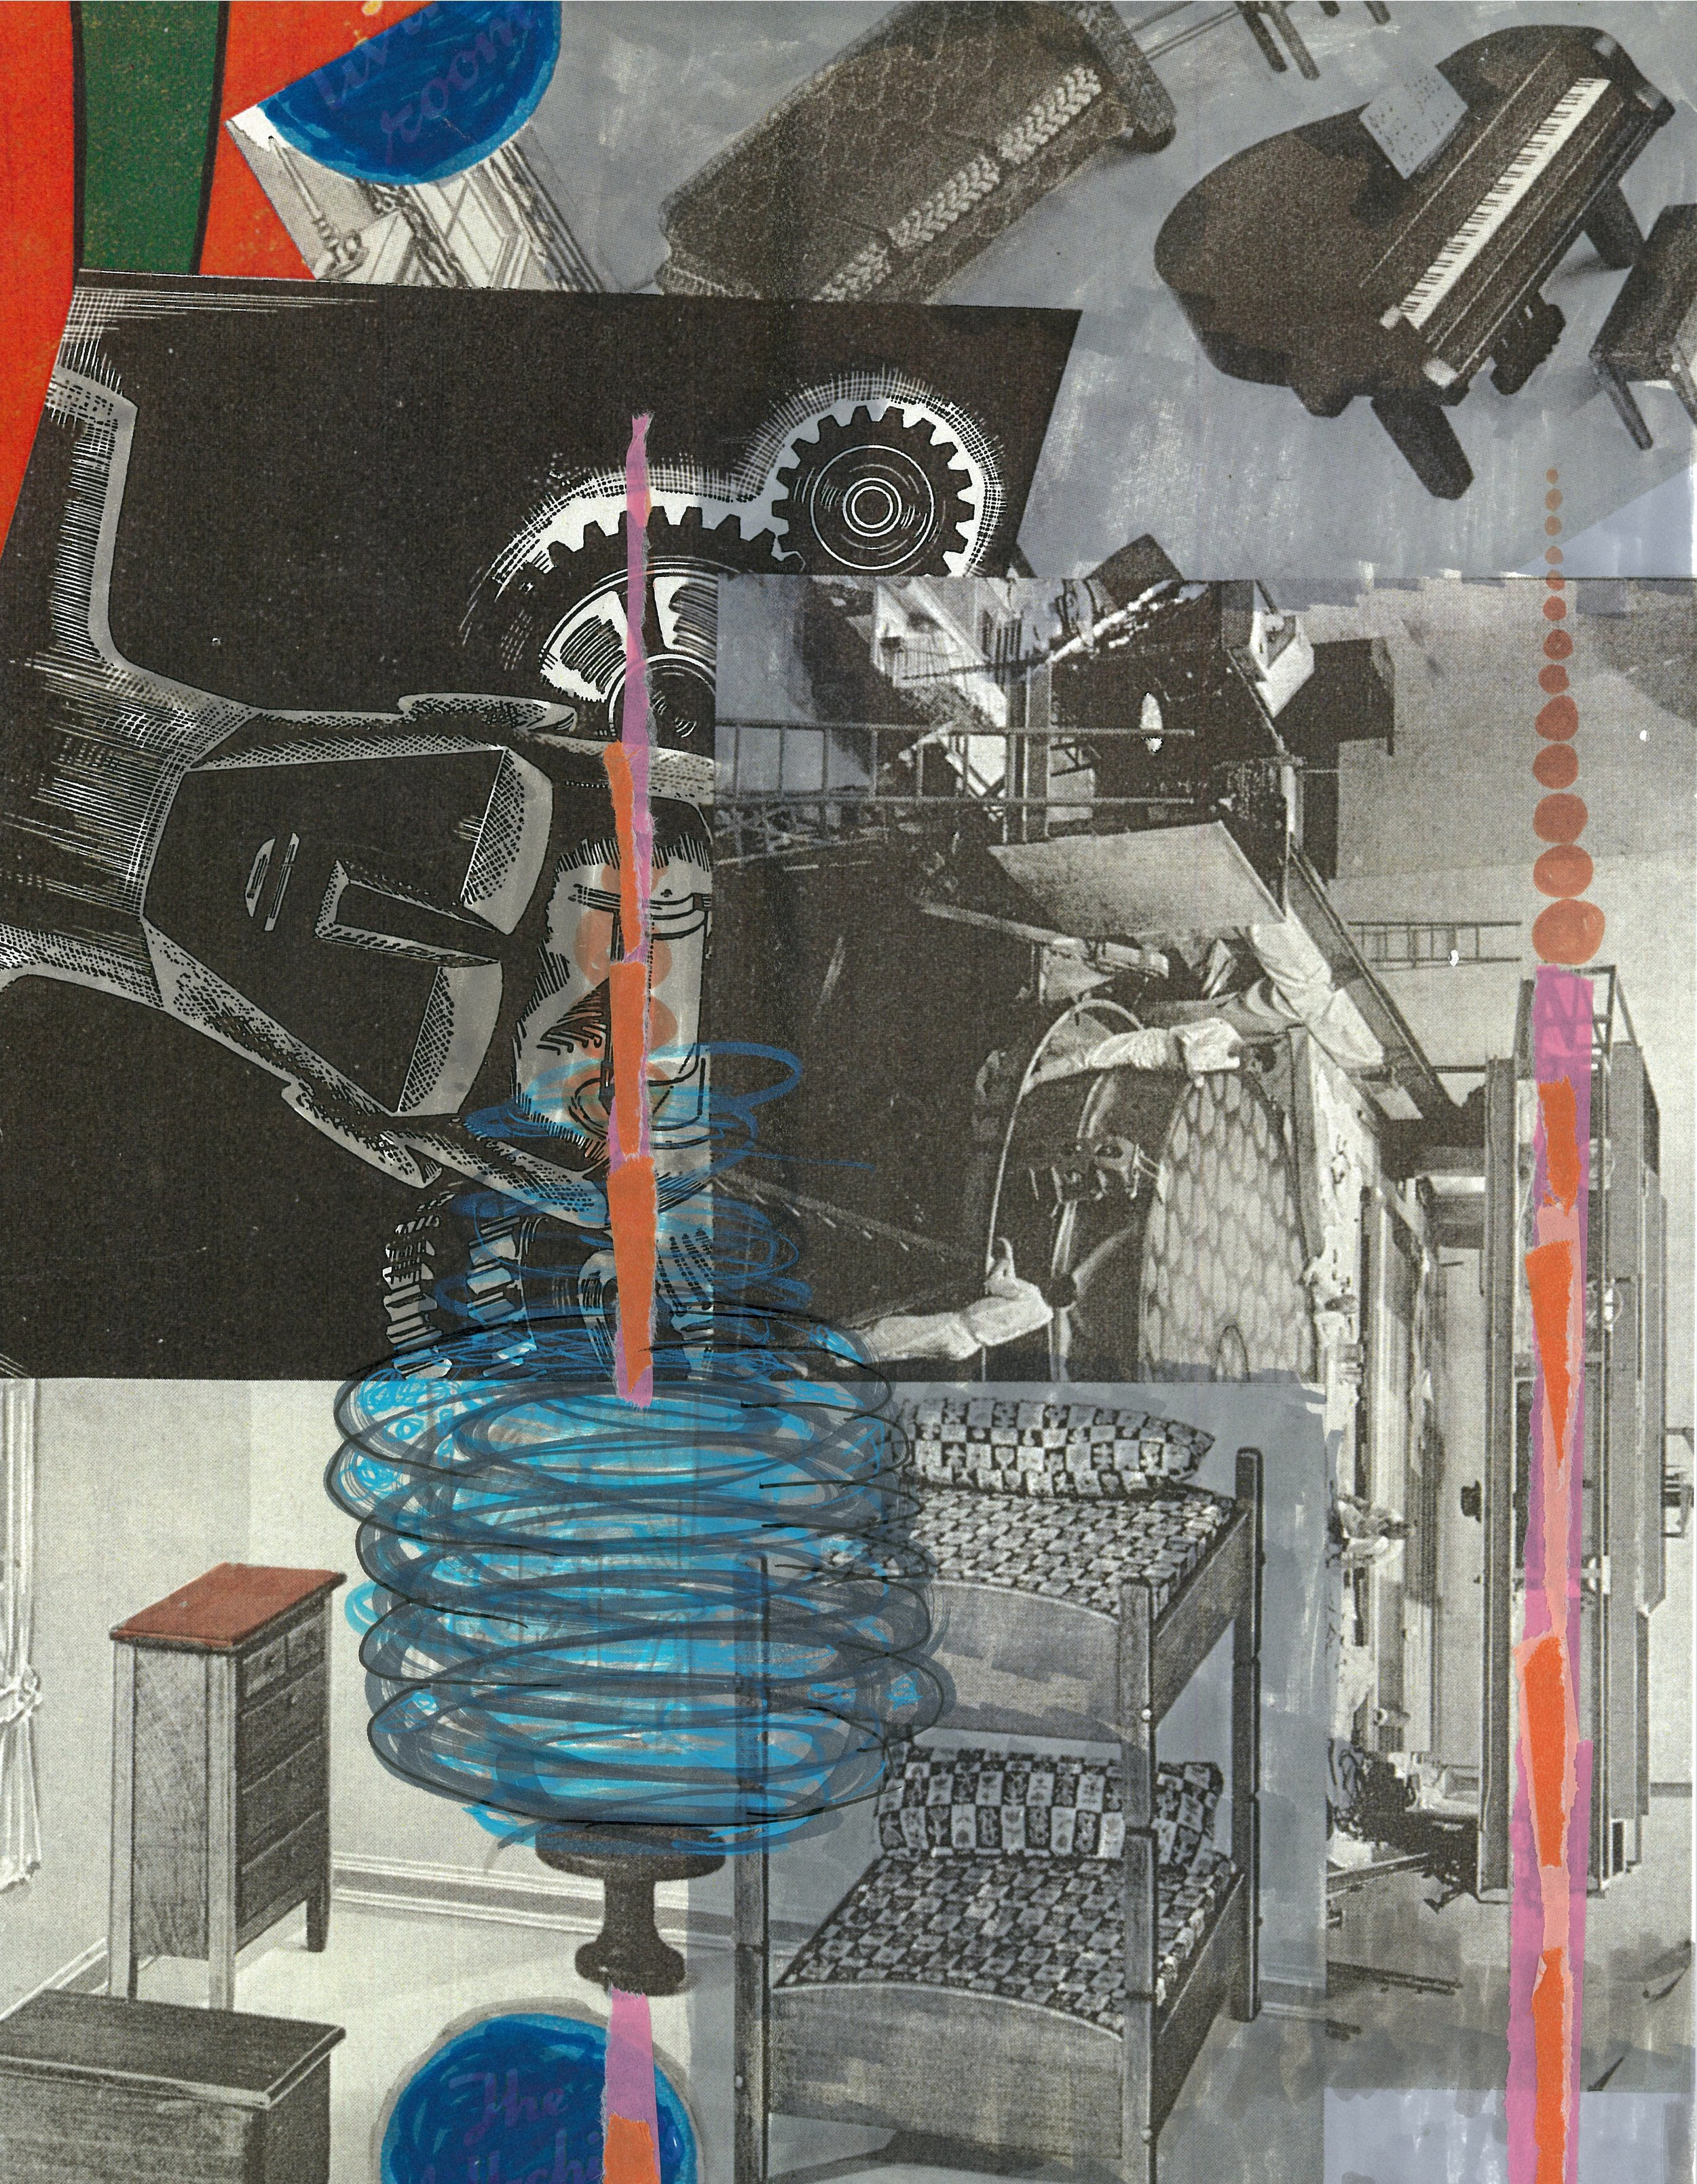 Two Towers   13 X 8.5 inches  collage, ink on archival paper